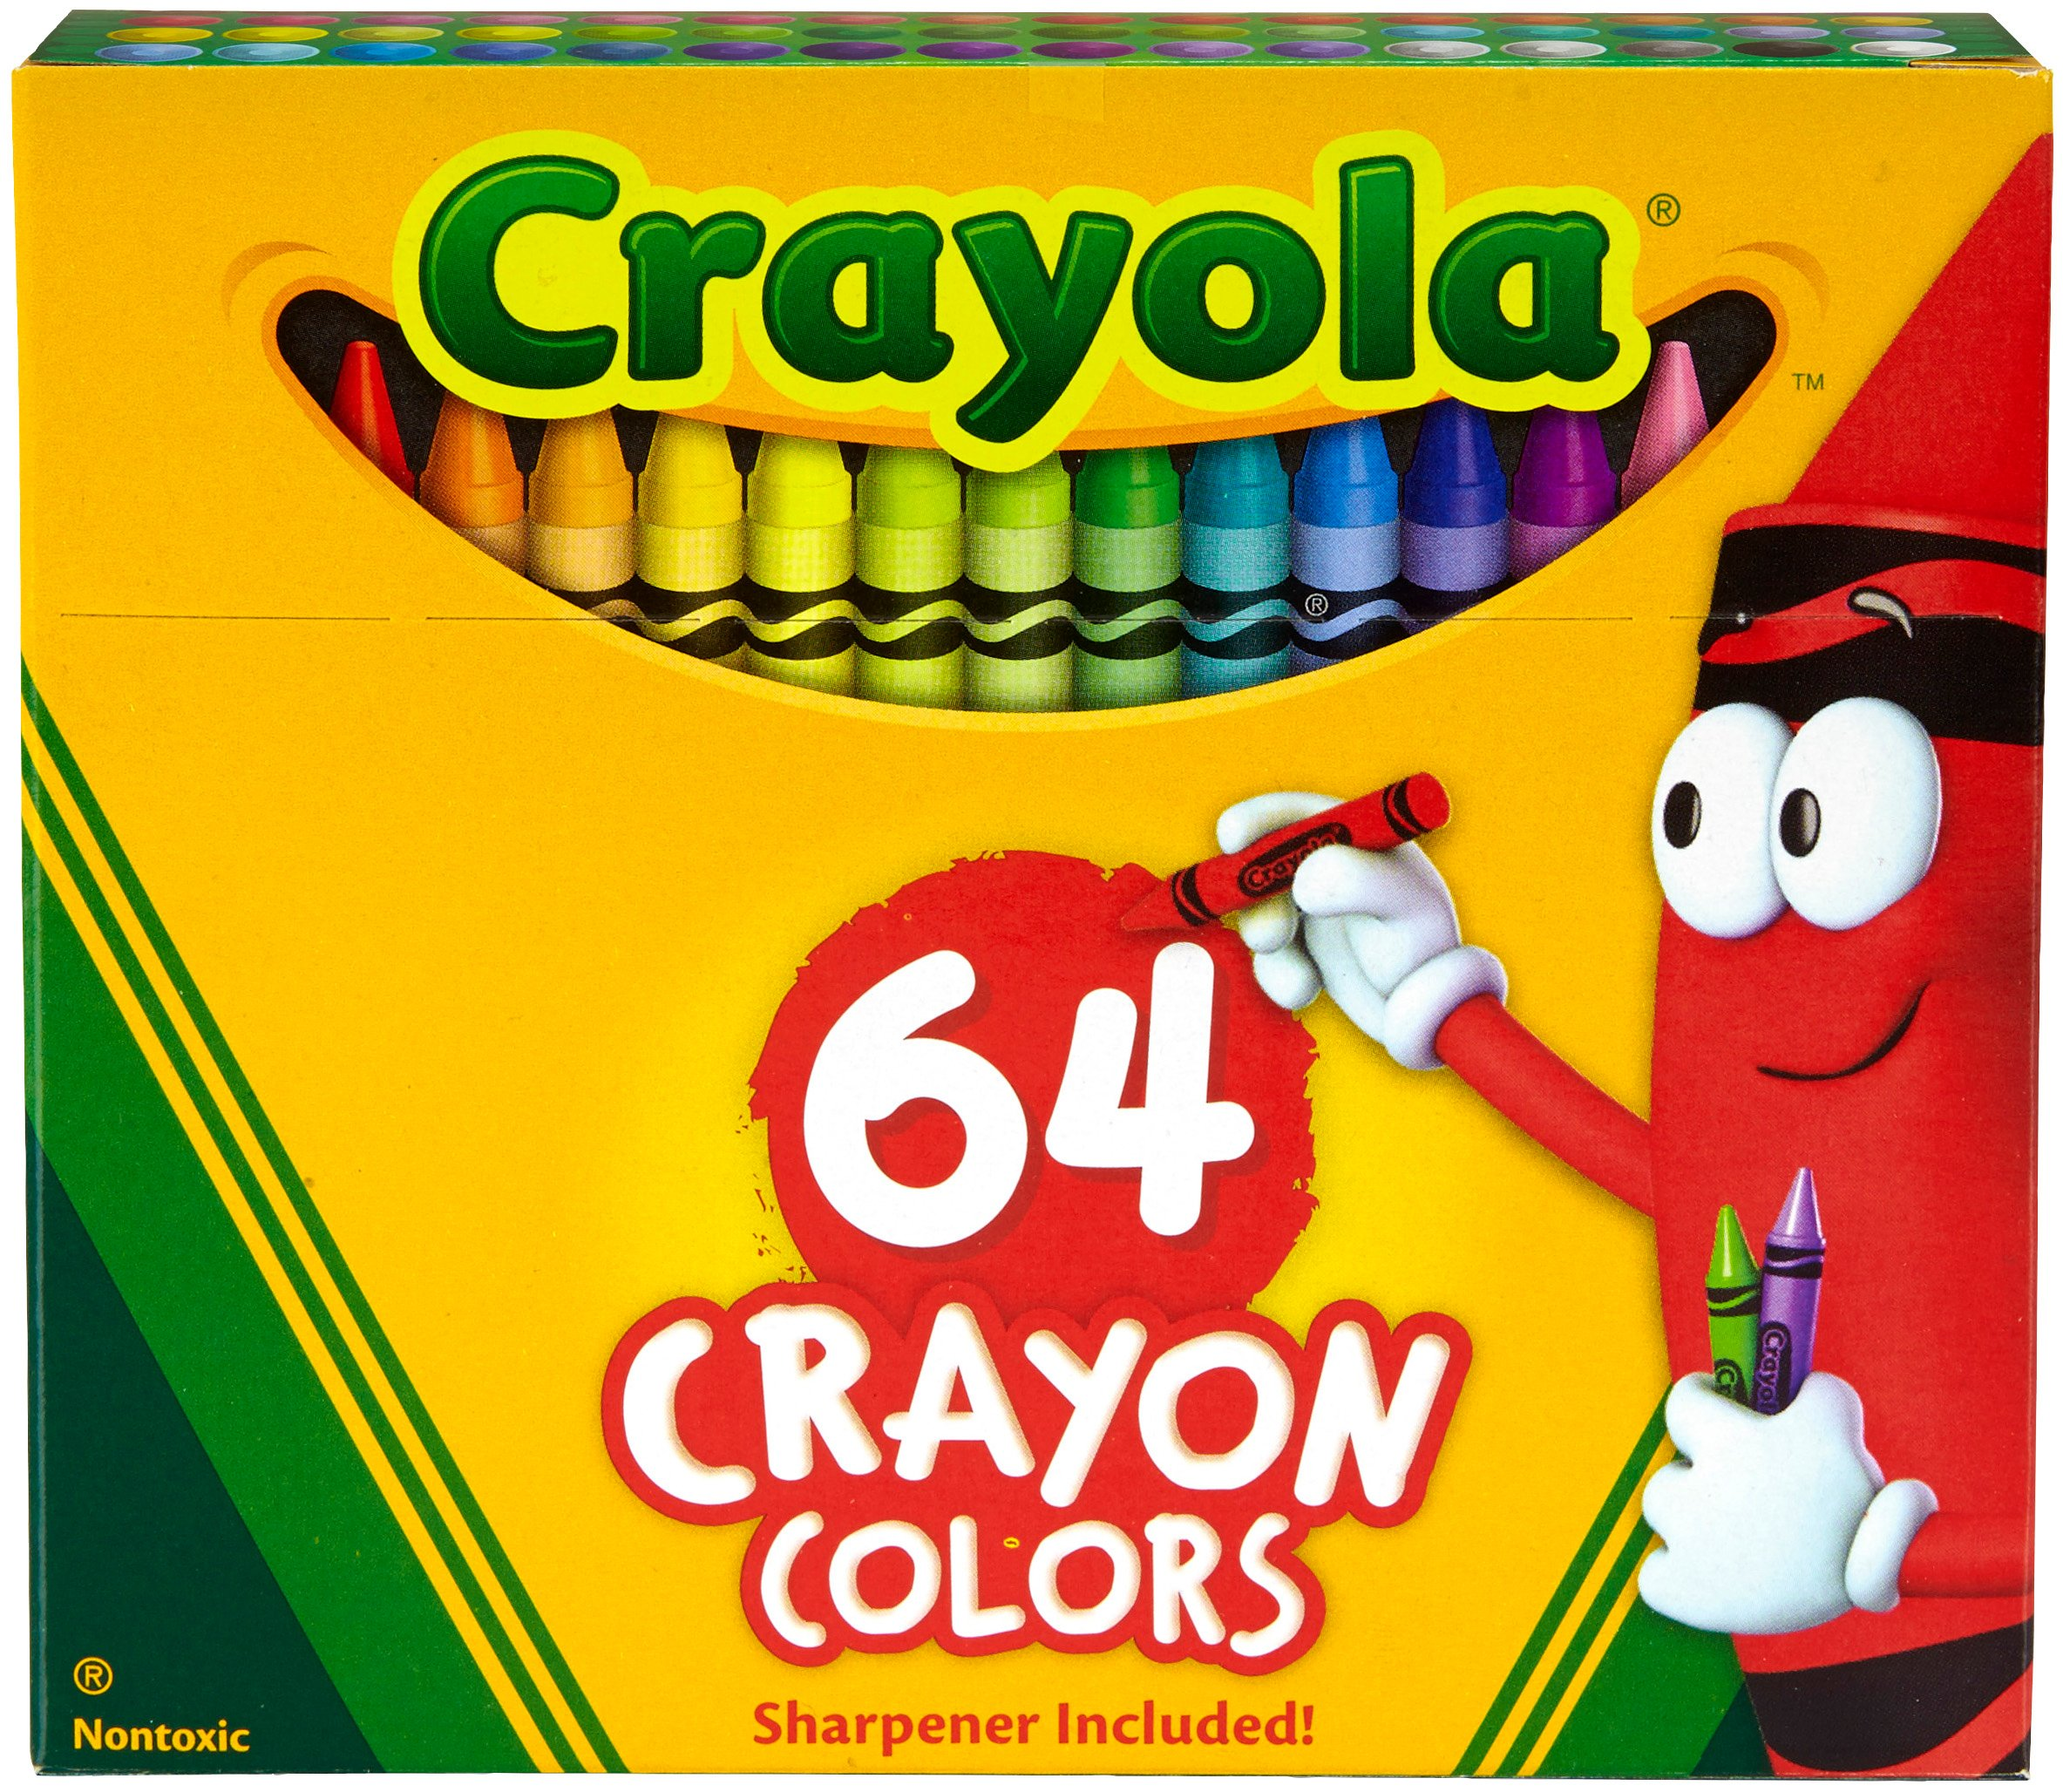 "Crayola TRTAZ11A 071662000646 Crayon Set, 3-5/8"", Permanent/Waterproof, 64/BX, Assorted, Sold as 1 Box"